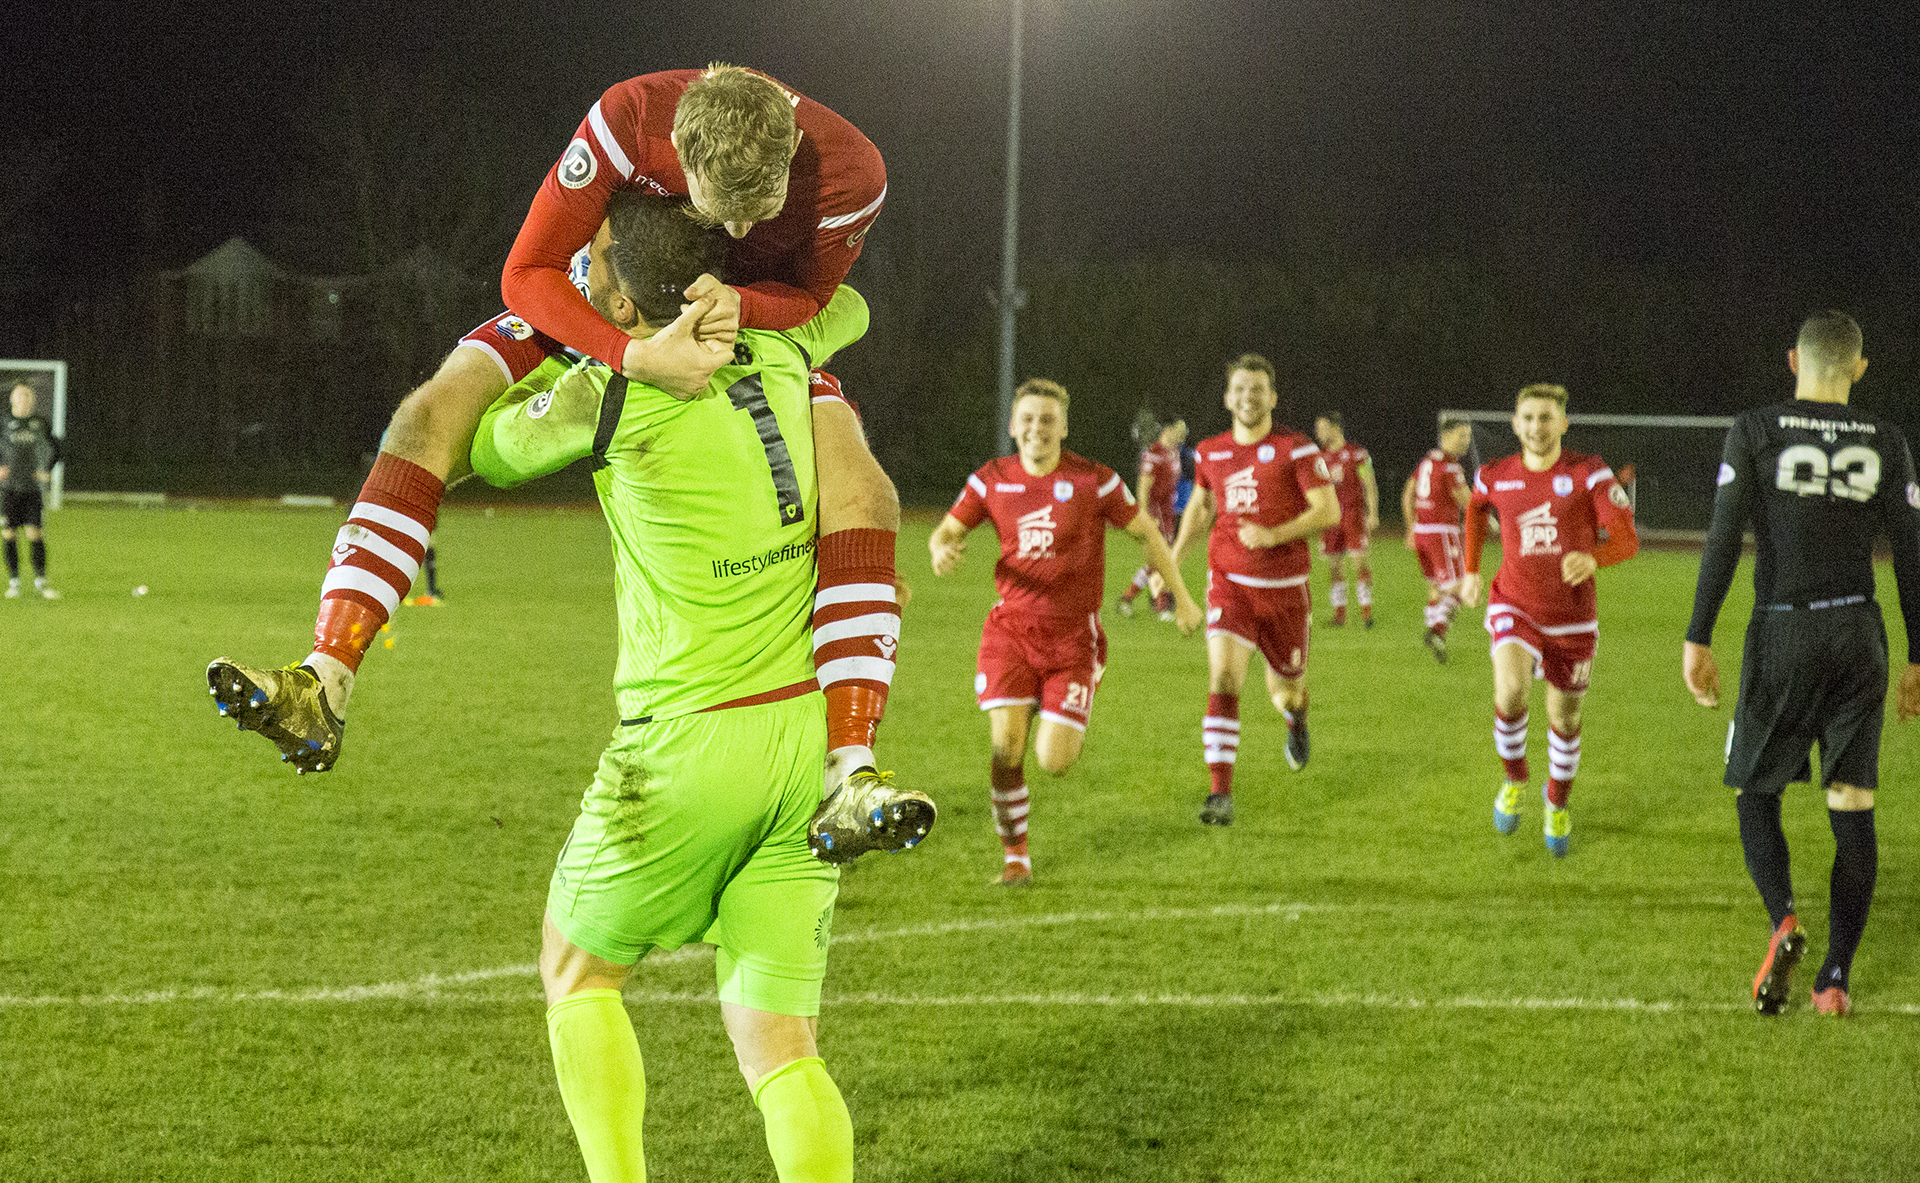 John Danby and John Disney celebrate The Nomads penalty shootout victory | © NCM Media